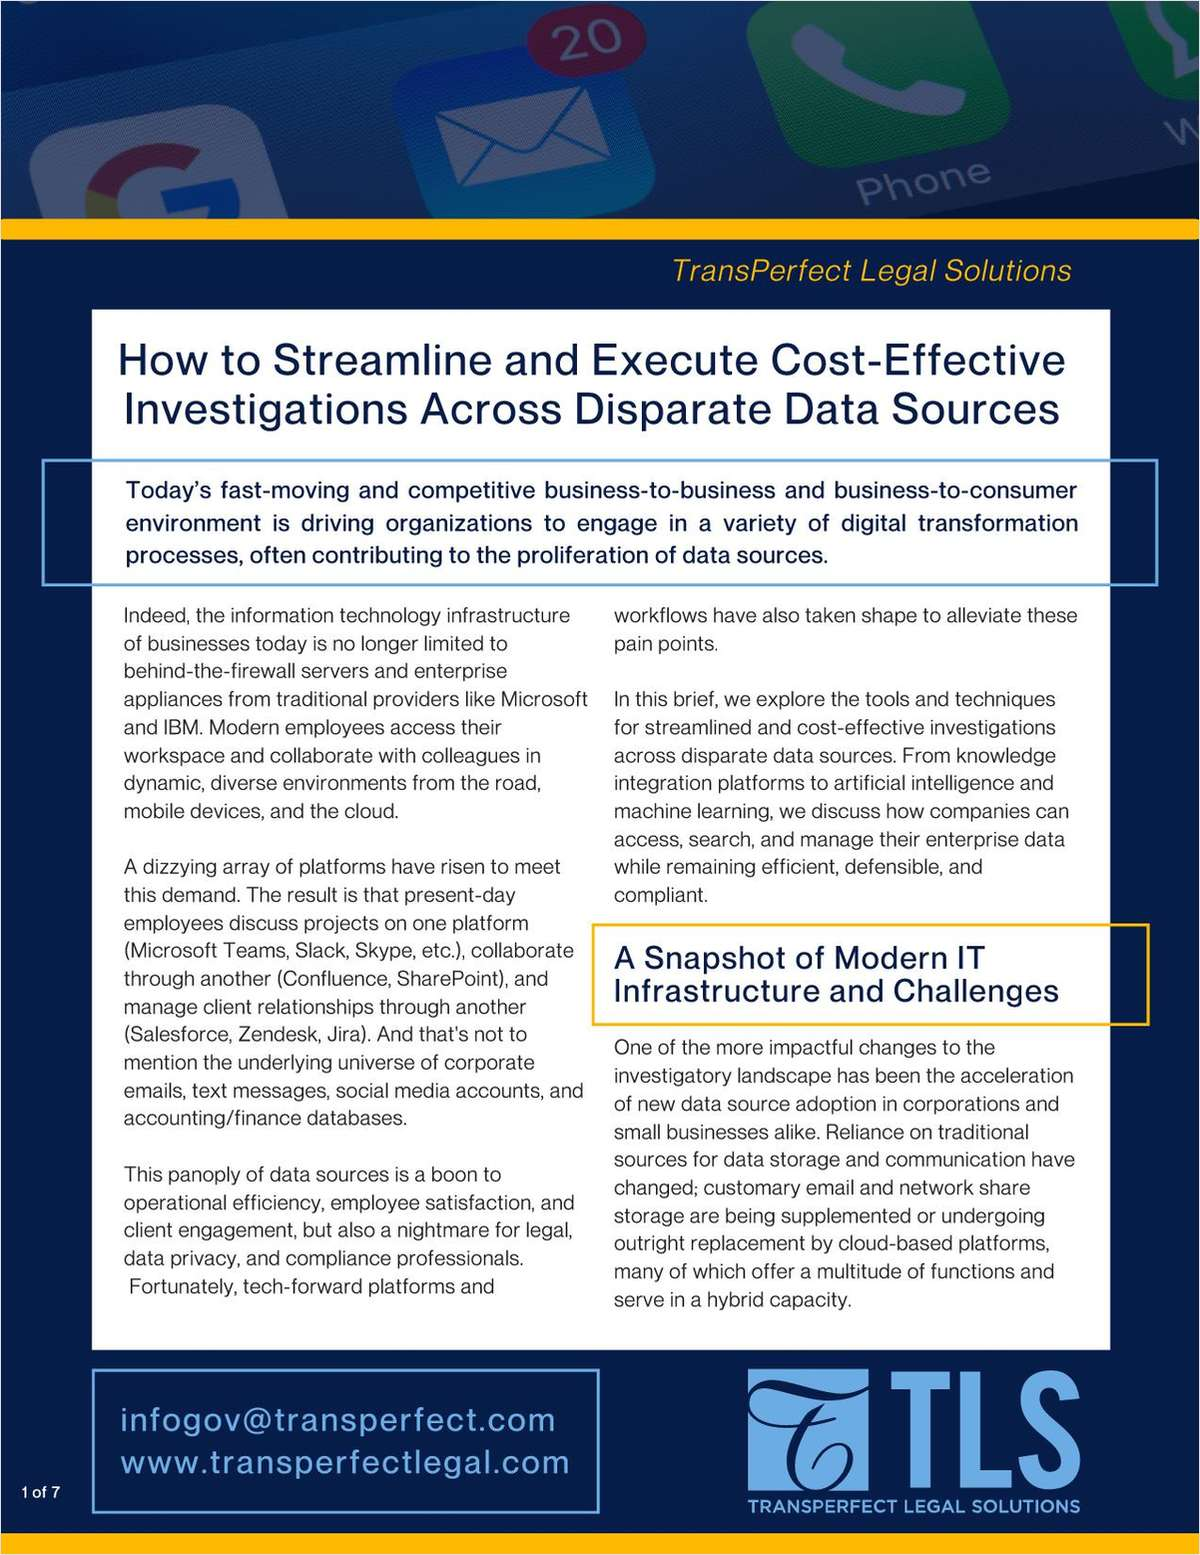 How to Streamline and Execute Cost-Effective Investigations Across Disparate Data Sources